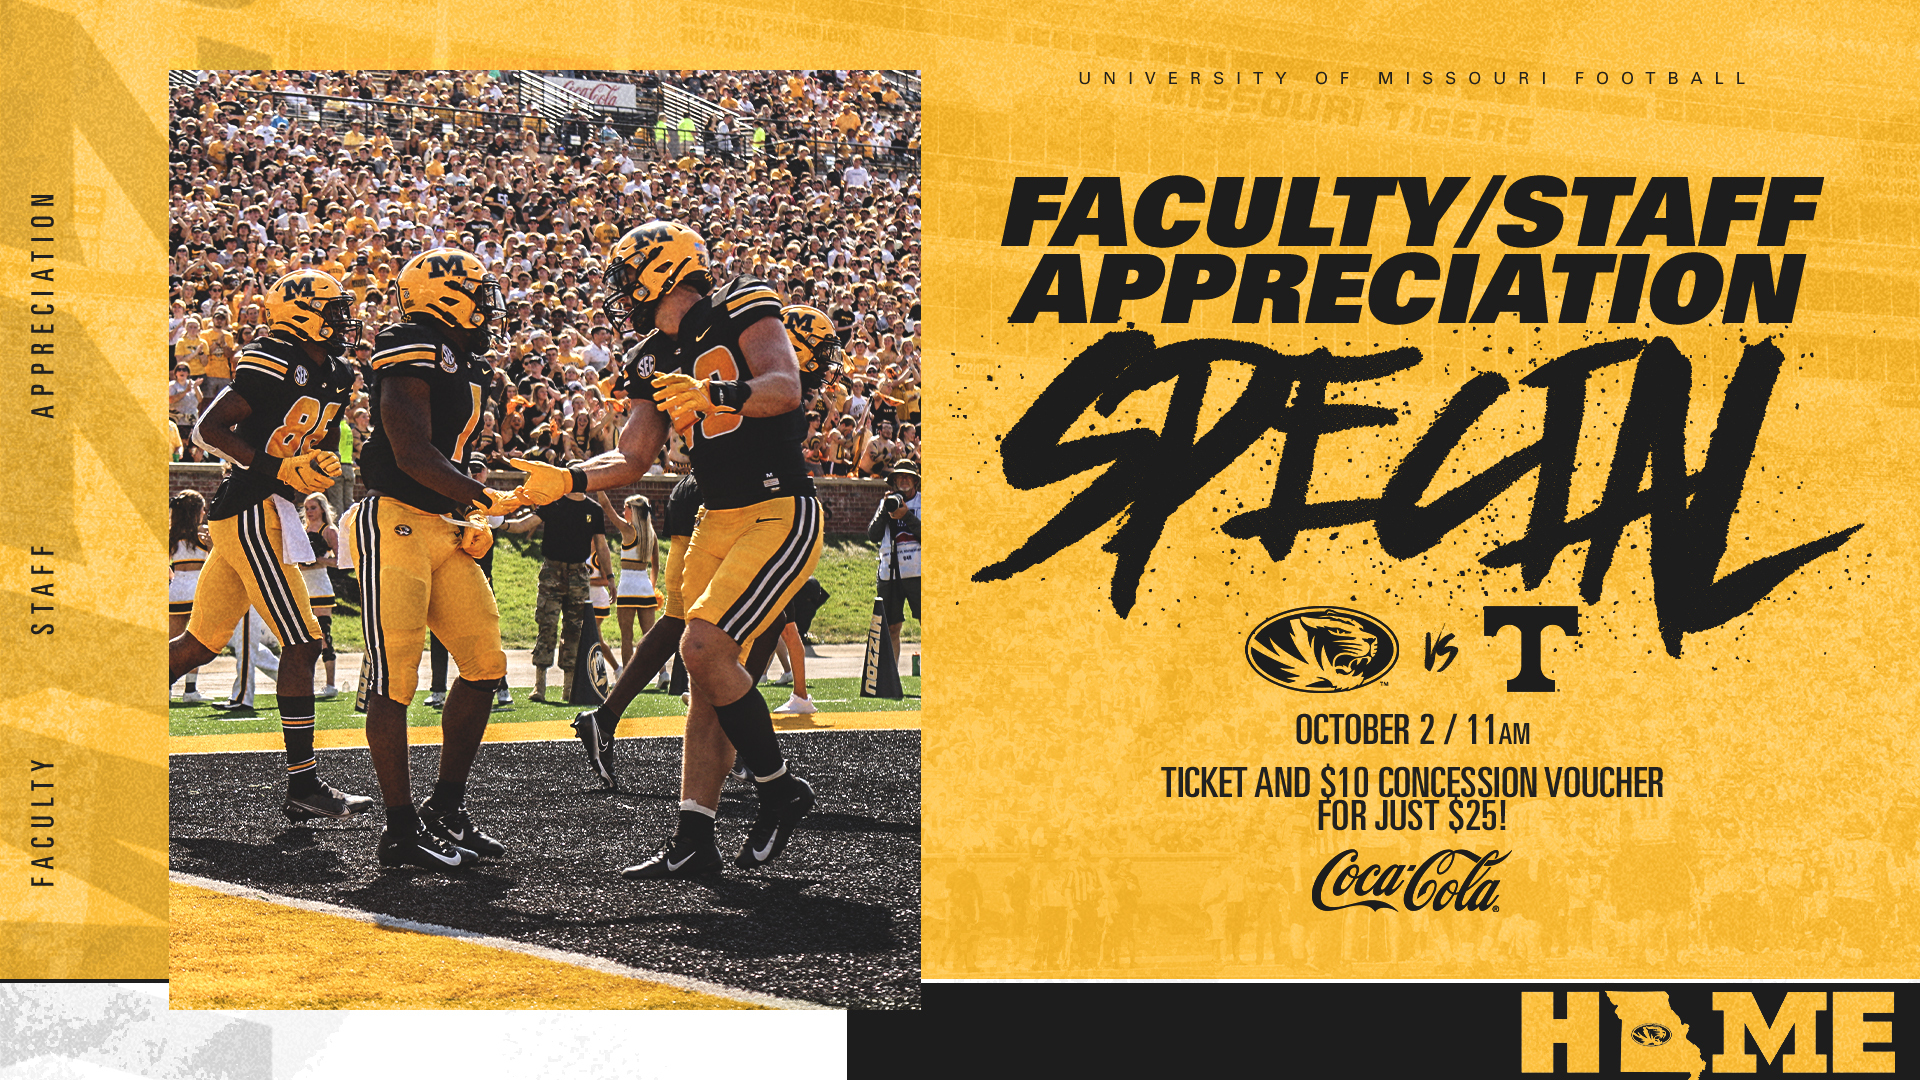 graphic for a faculty/staff appreciation event